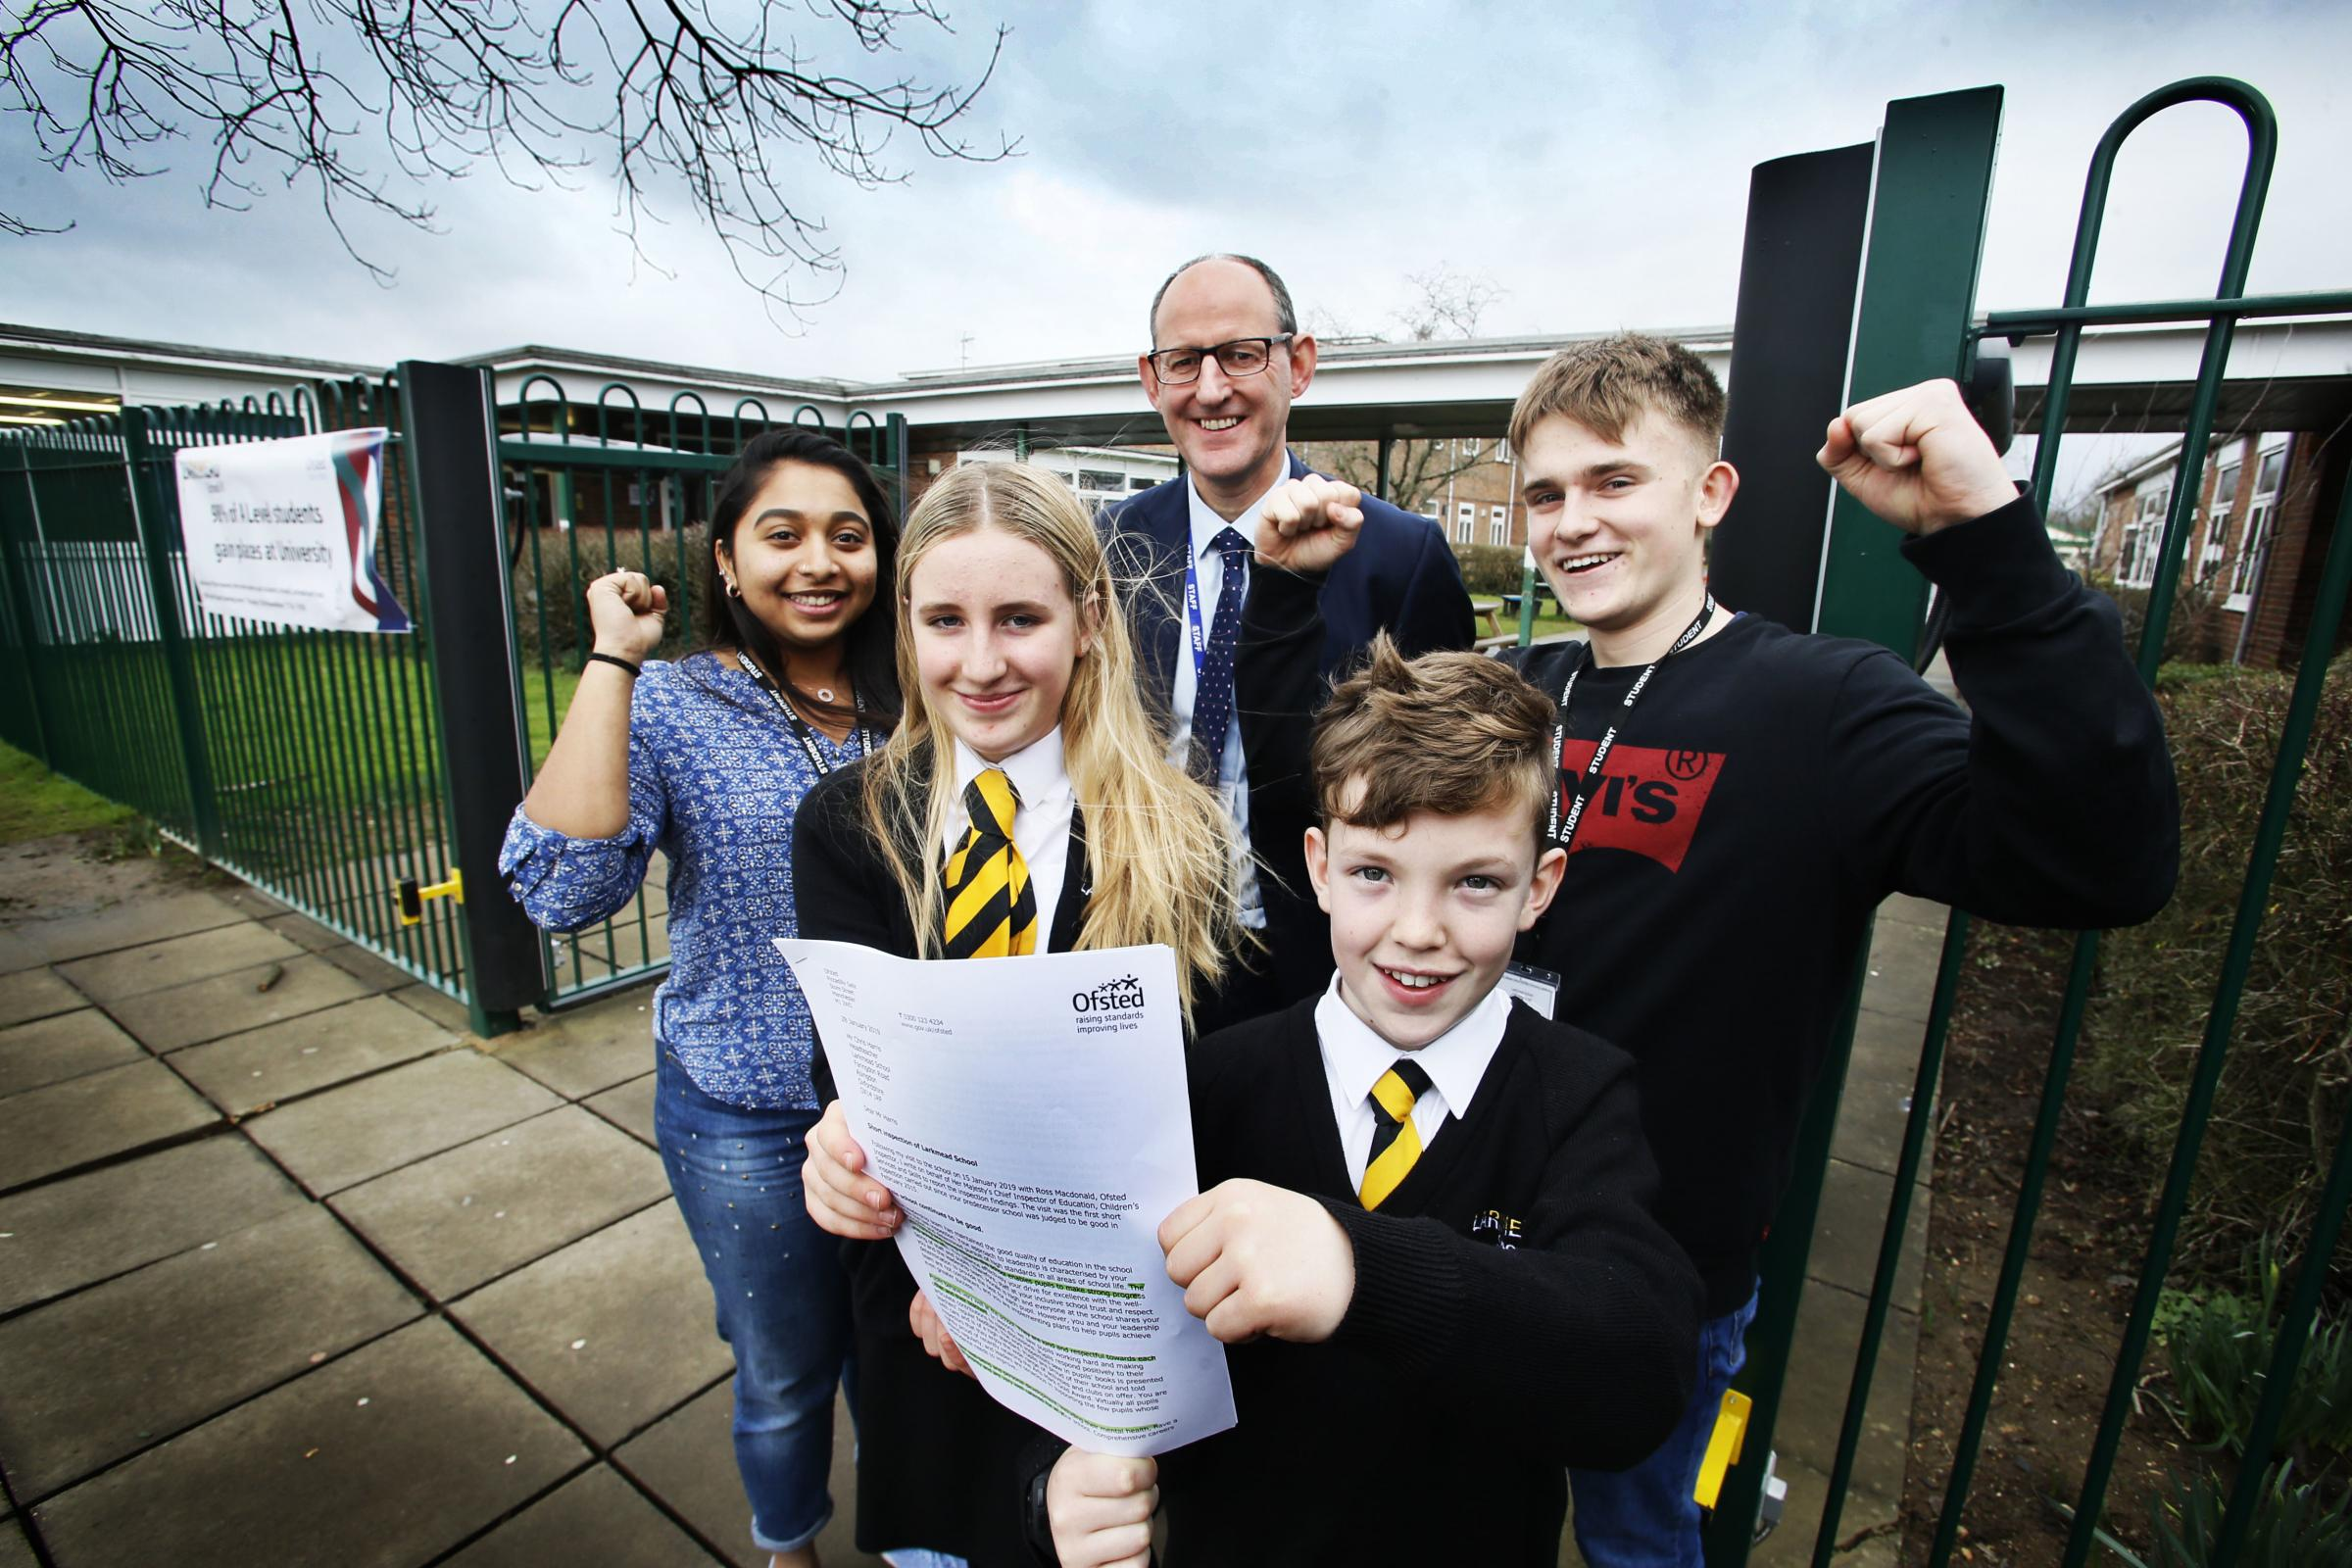 Larkmead headteacher Chris Harris pictured with sixth form students Ann Thomas (17) and Ben Fagan (16), and pupils Daisy Phillpott (12) and Nathan Wall (11). Picture by Ed Nix